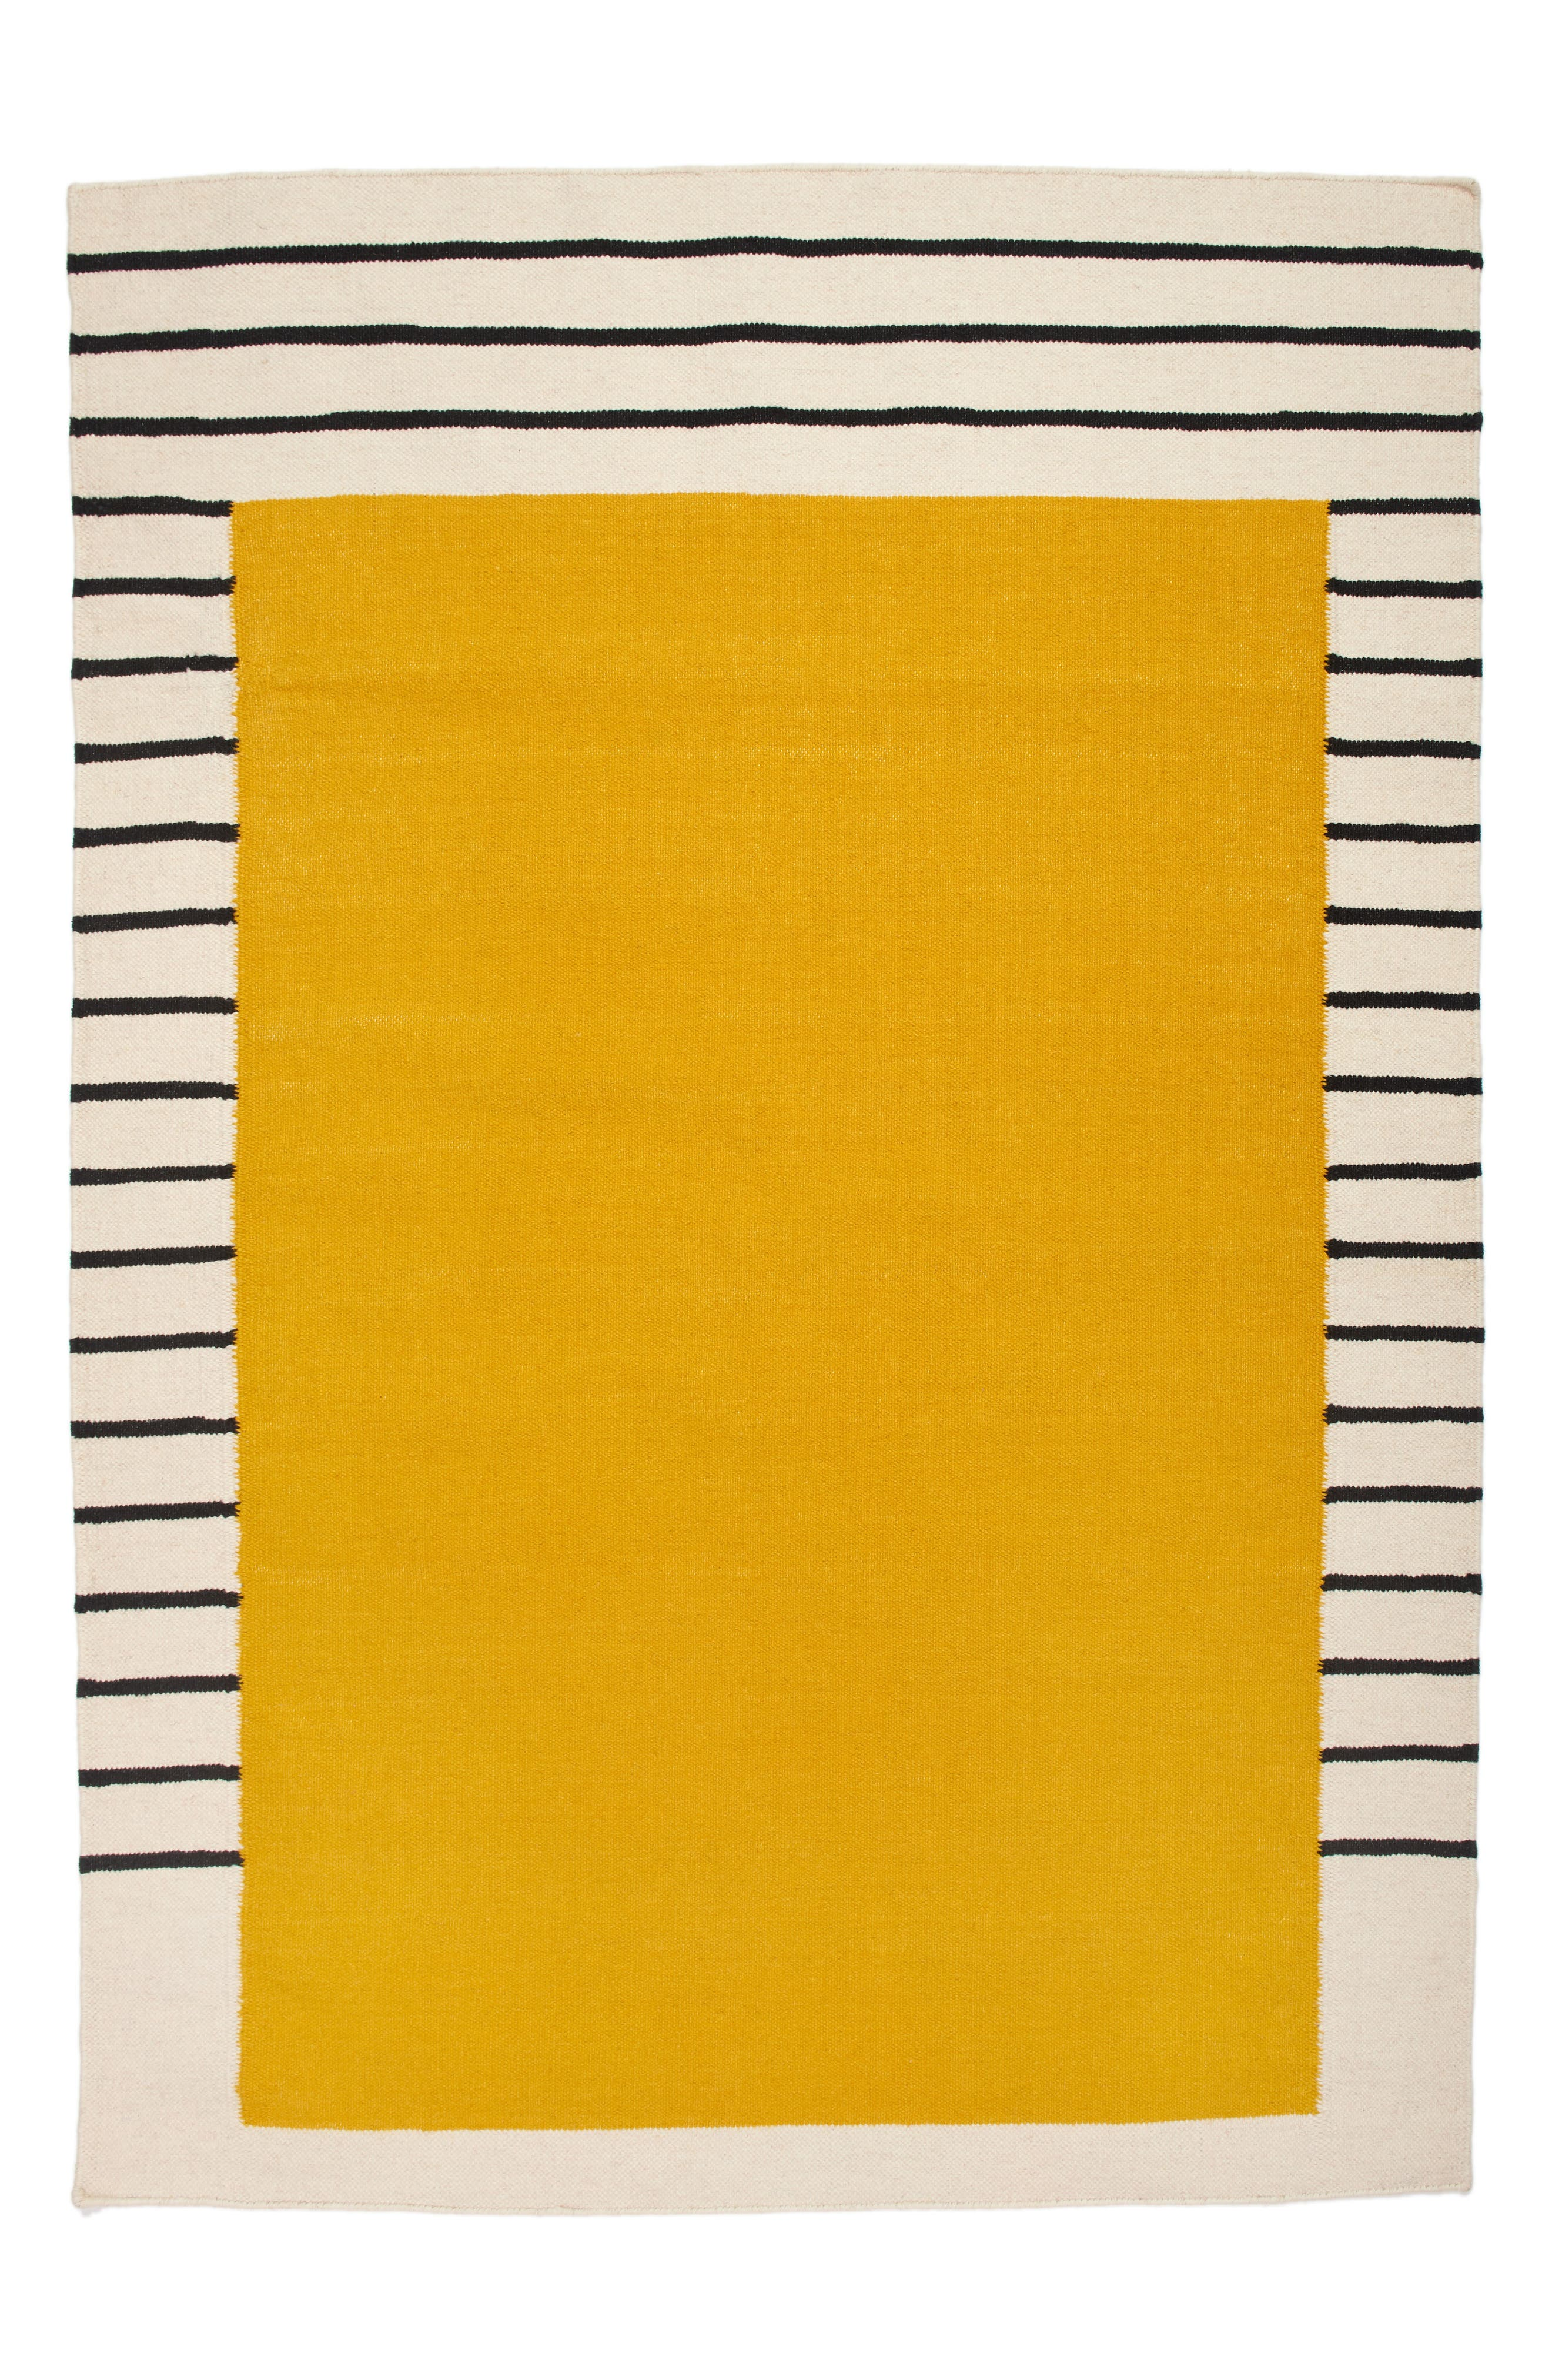 Suzanne Flat Weave Rug,                         Main,                         color, YELLOW